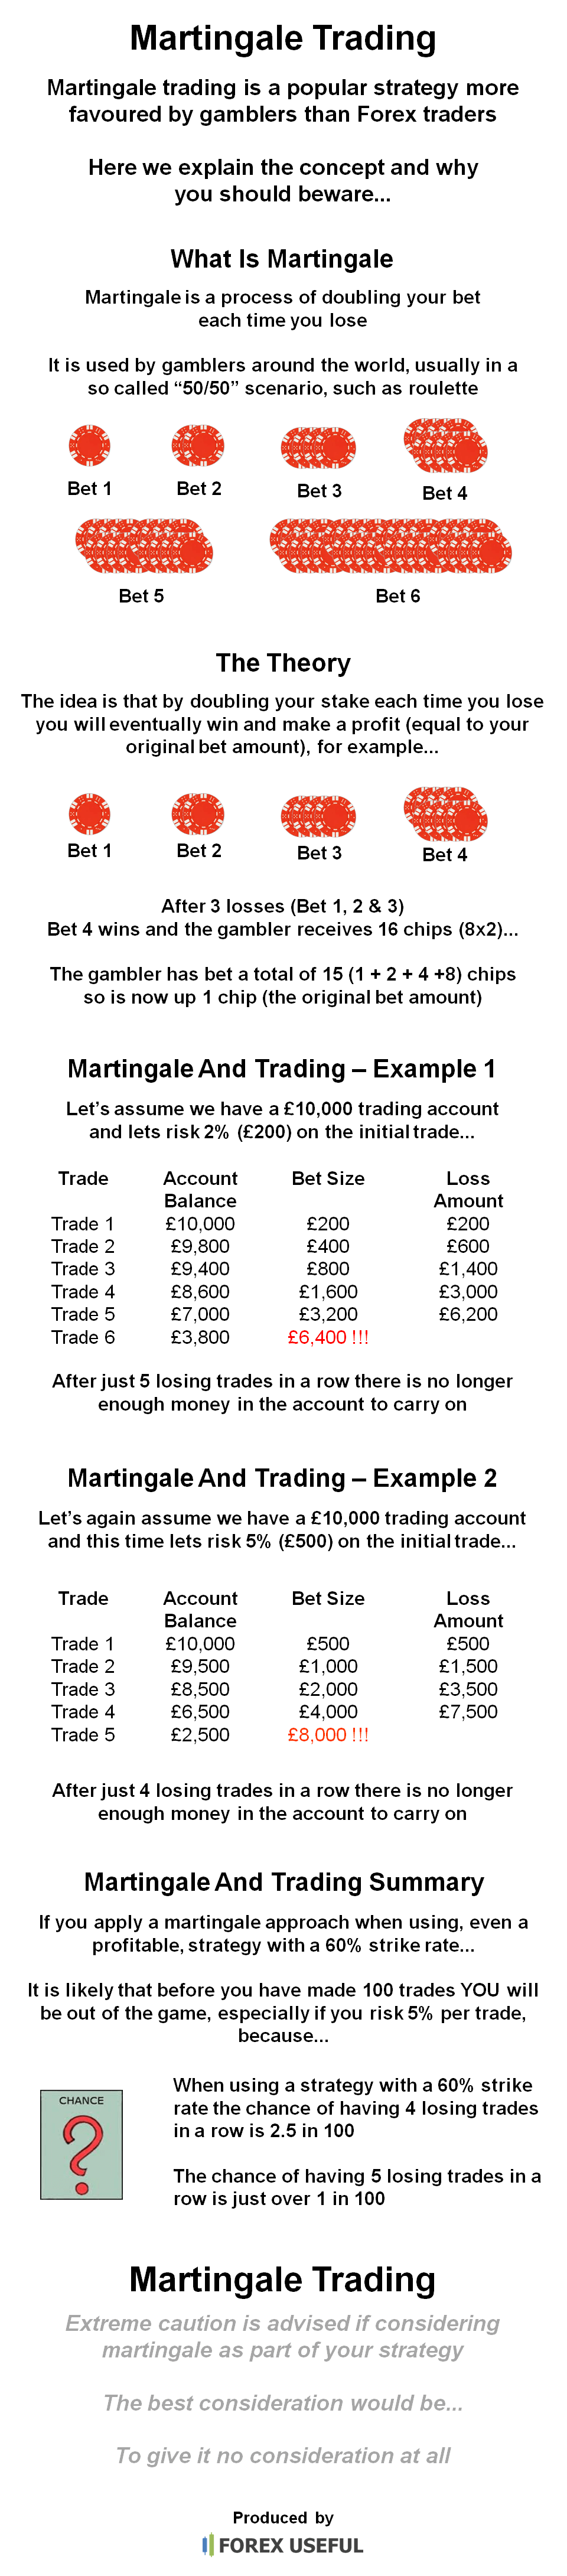 Martingale forex trading strategy